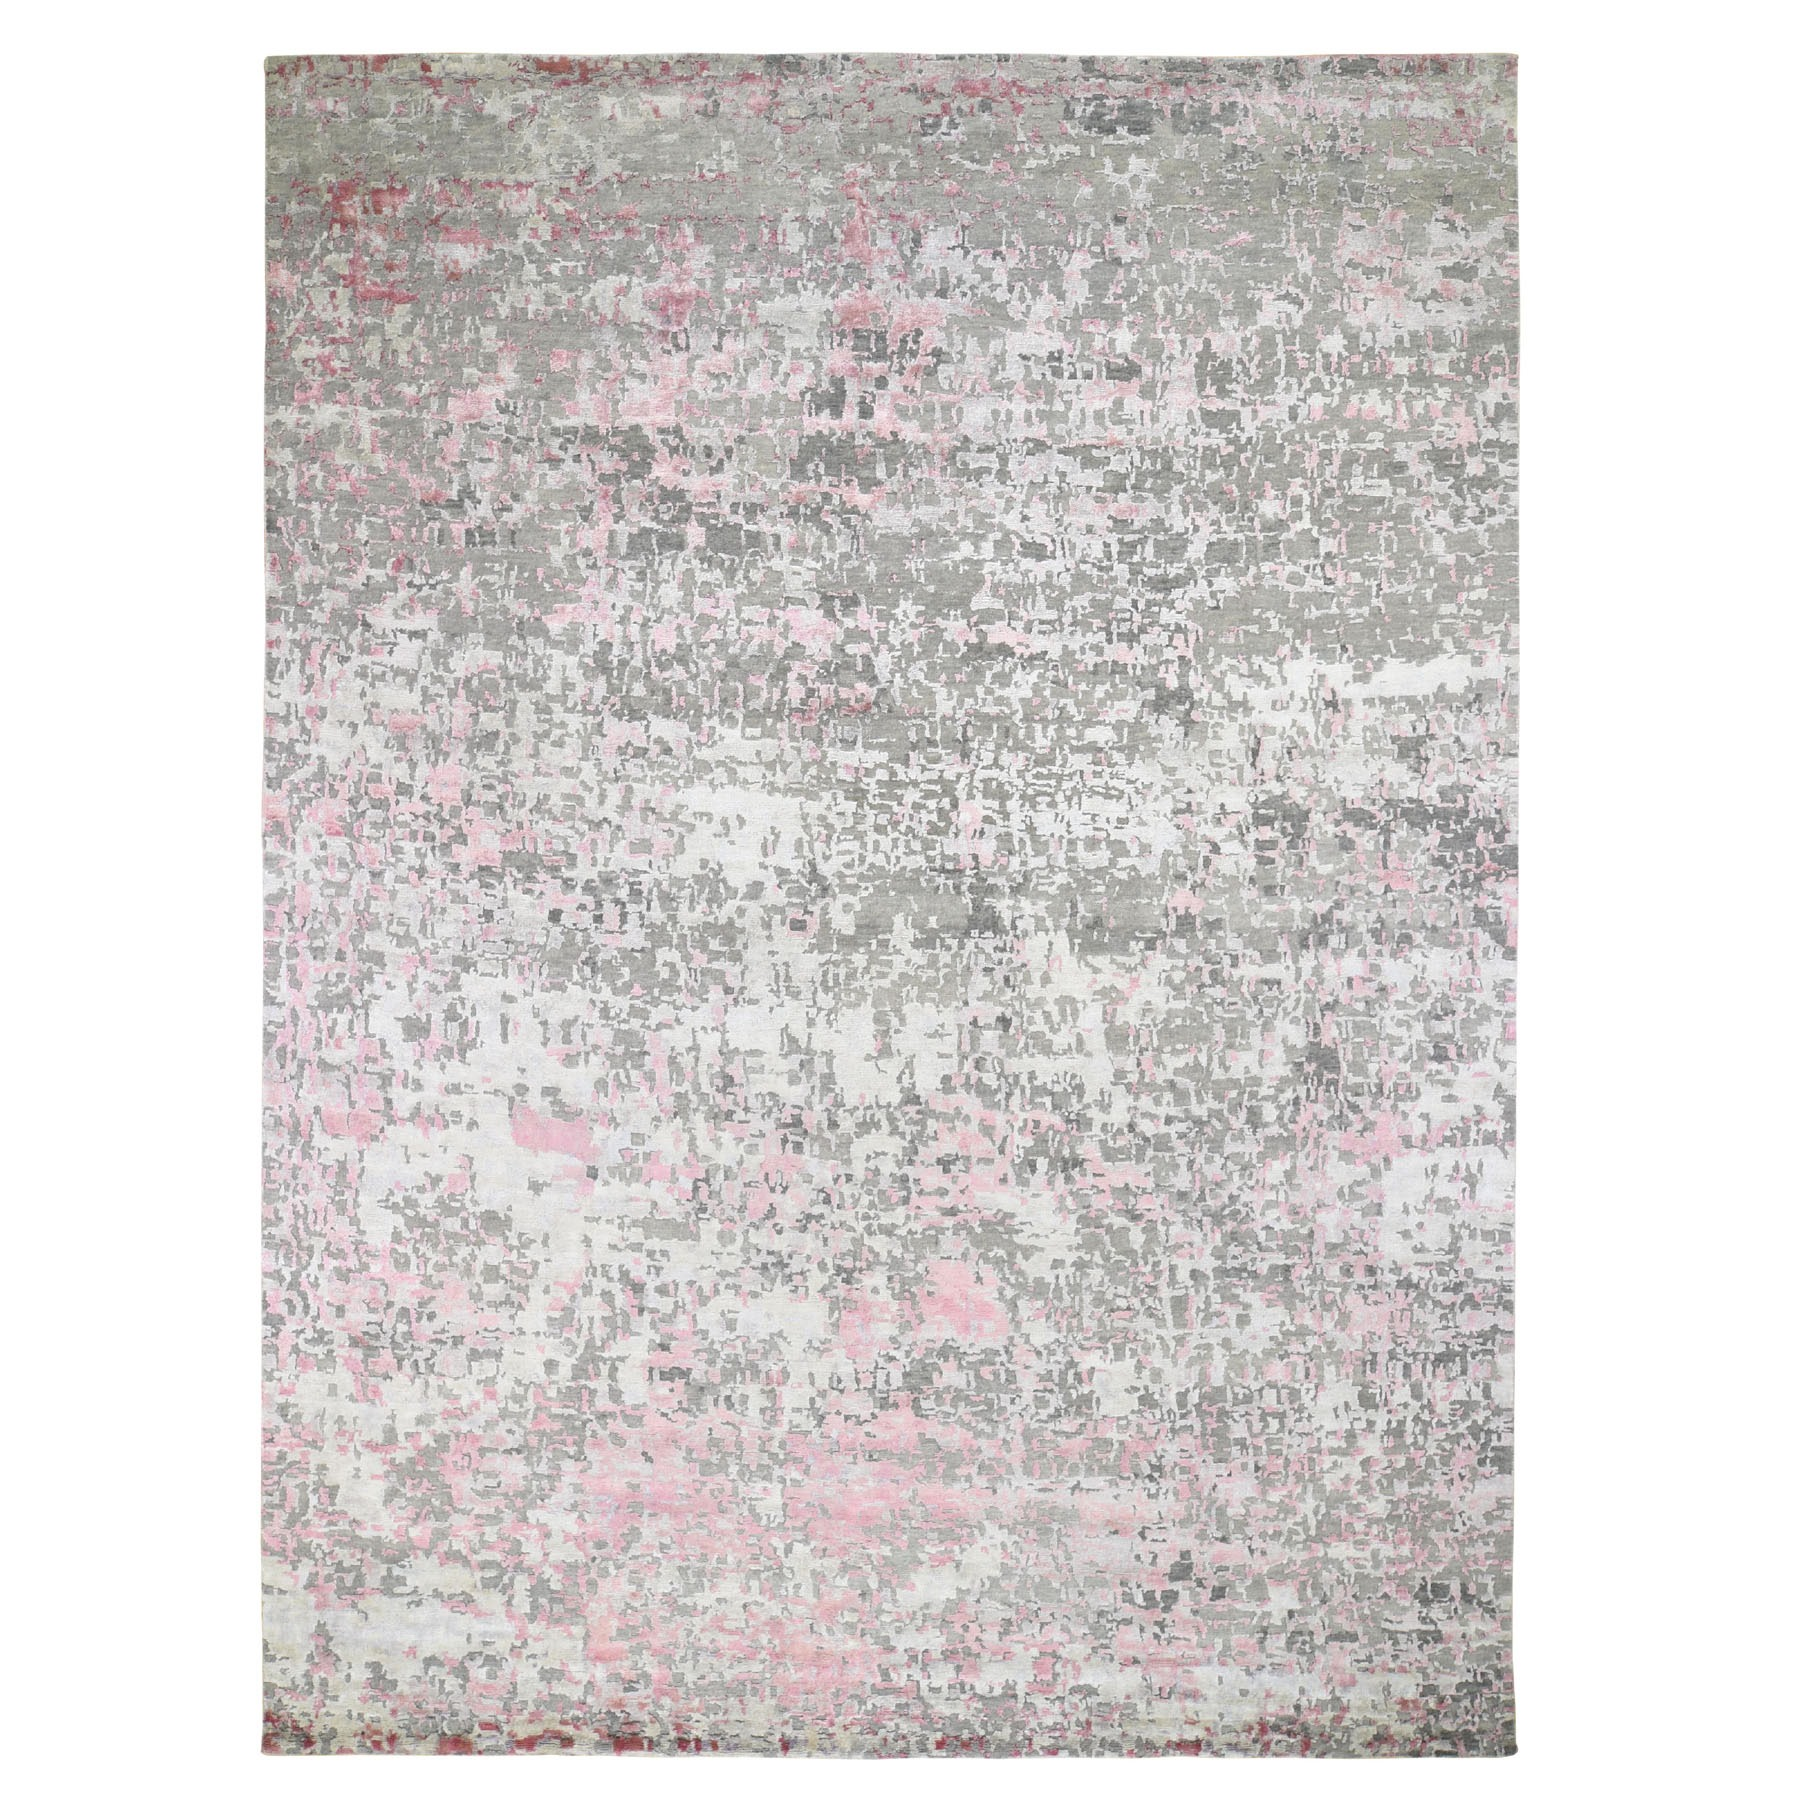 9'x12' Pink Hi-Lo Pile Abstract Design Wool And Silk Hand Knotted Oriental Rug